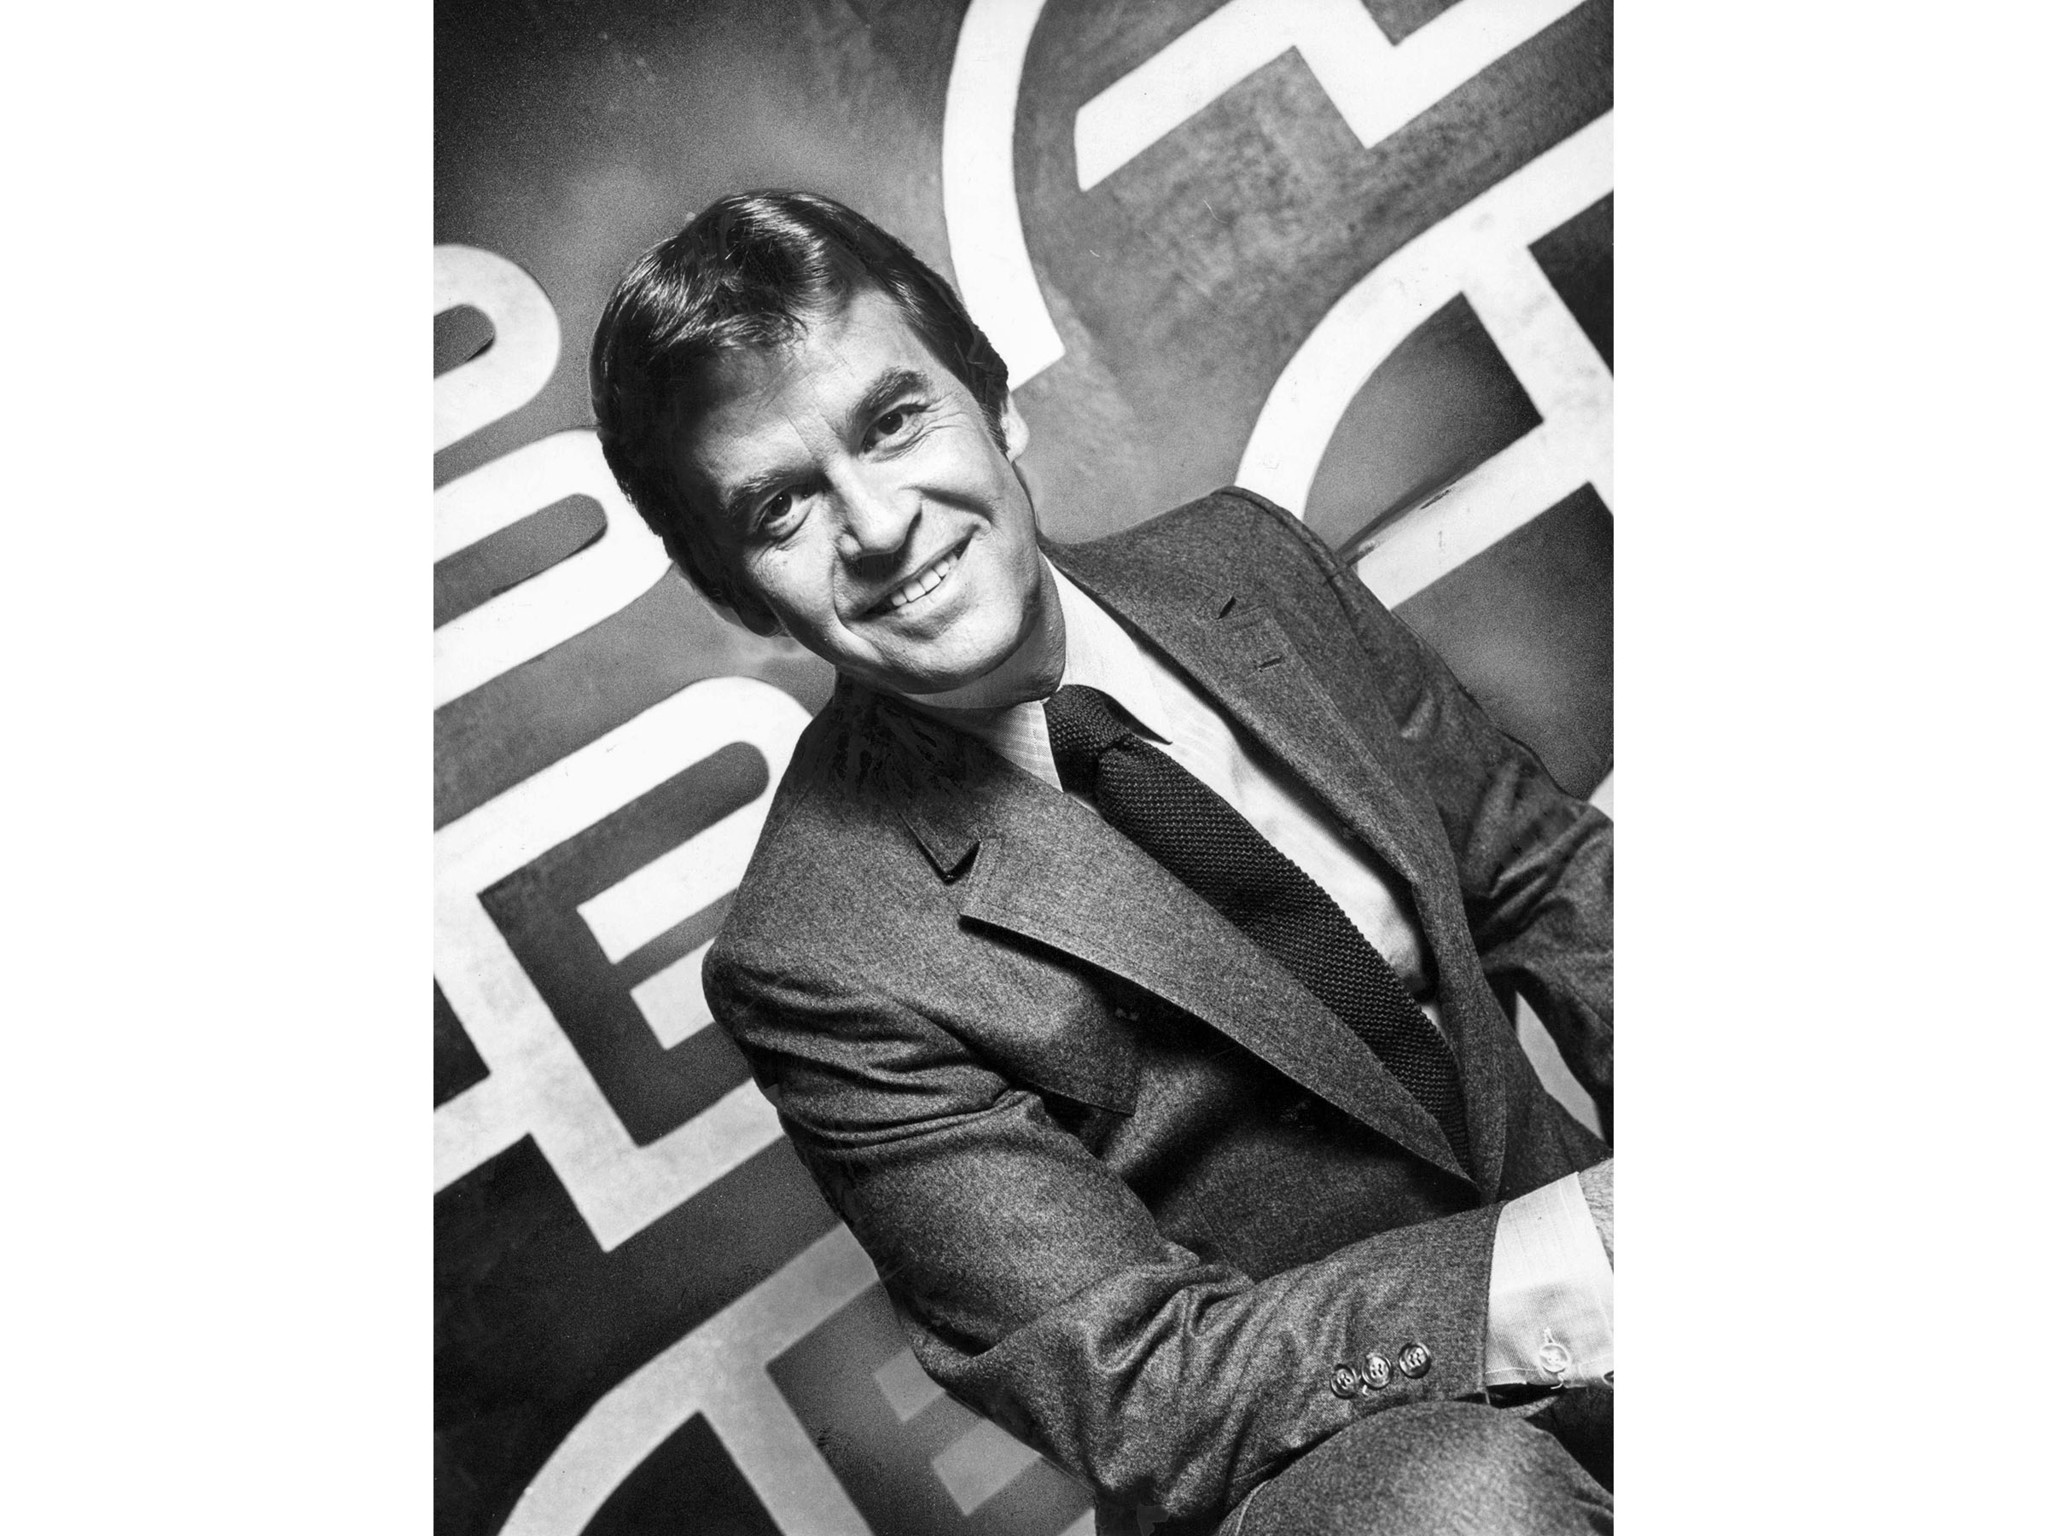 May 16, 1981: portrait of Dick Clark, host of American Bandstand. This photo was published in the Ju